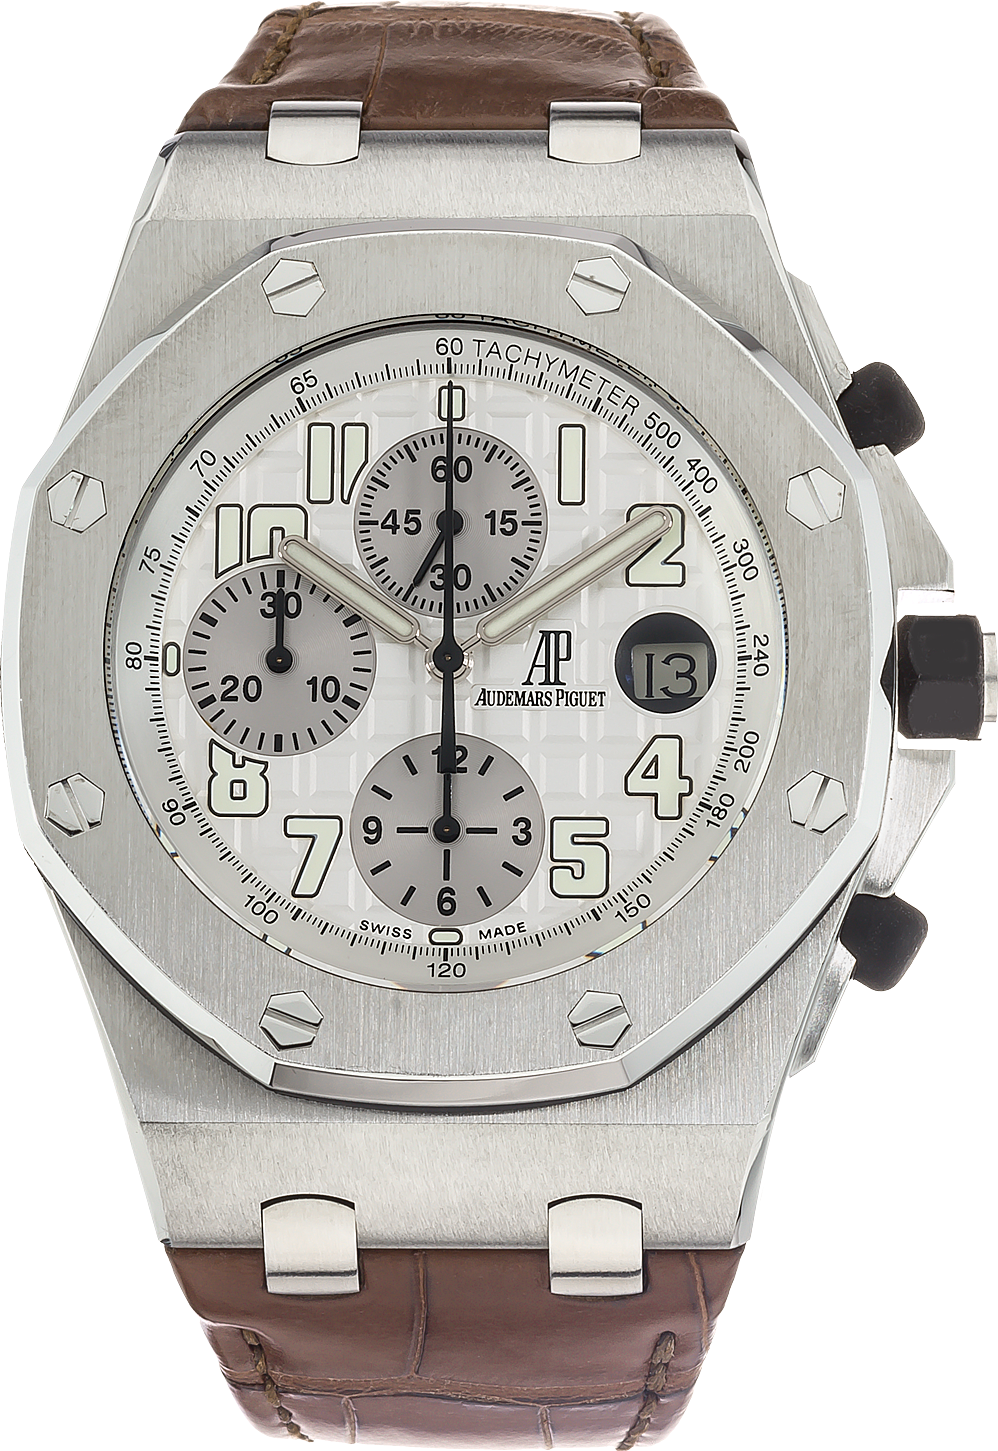 Audemars Piguet Royal Oak Offshore Chronograph 26020ST.OO.D001IN.02